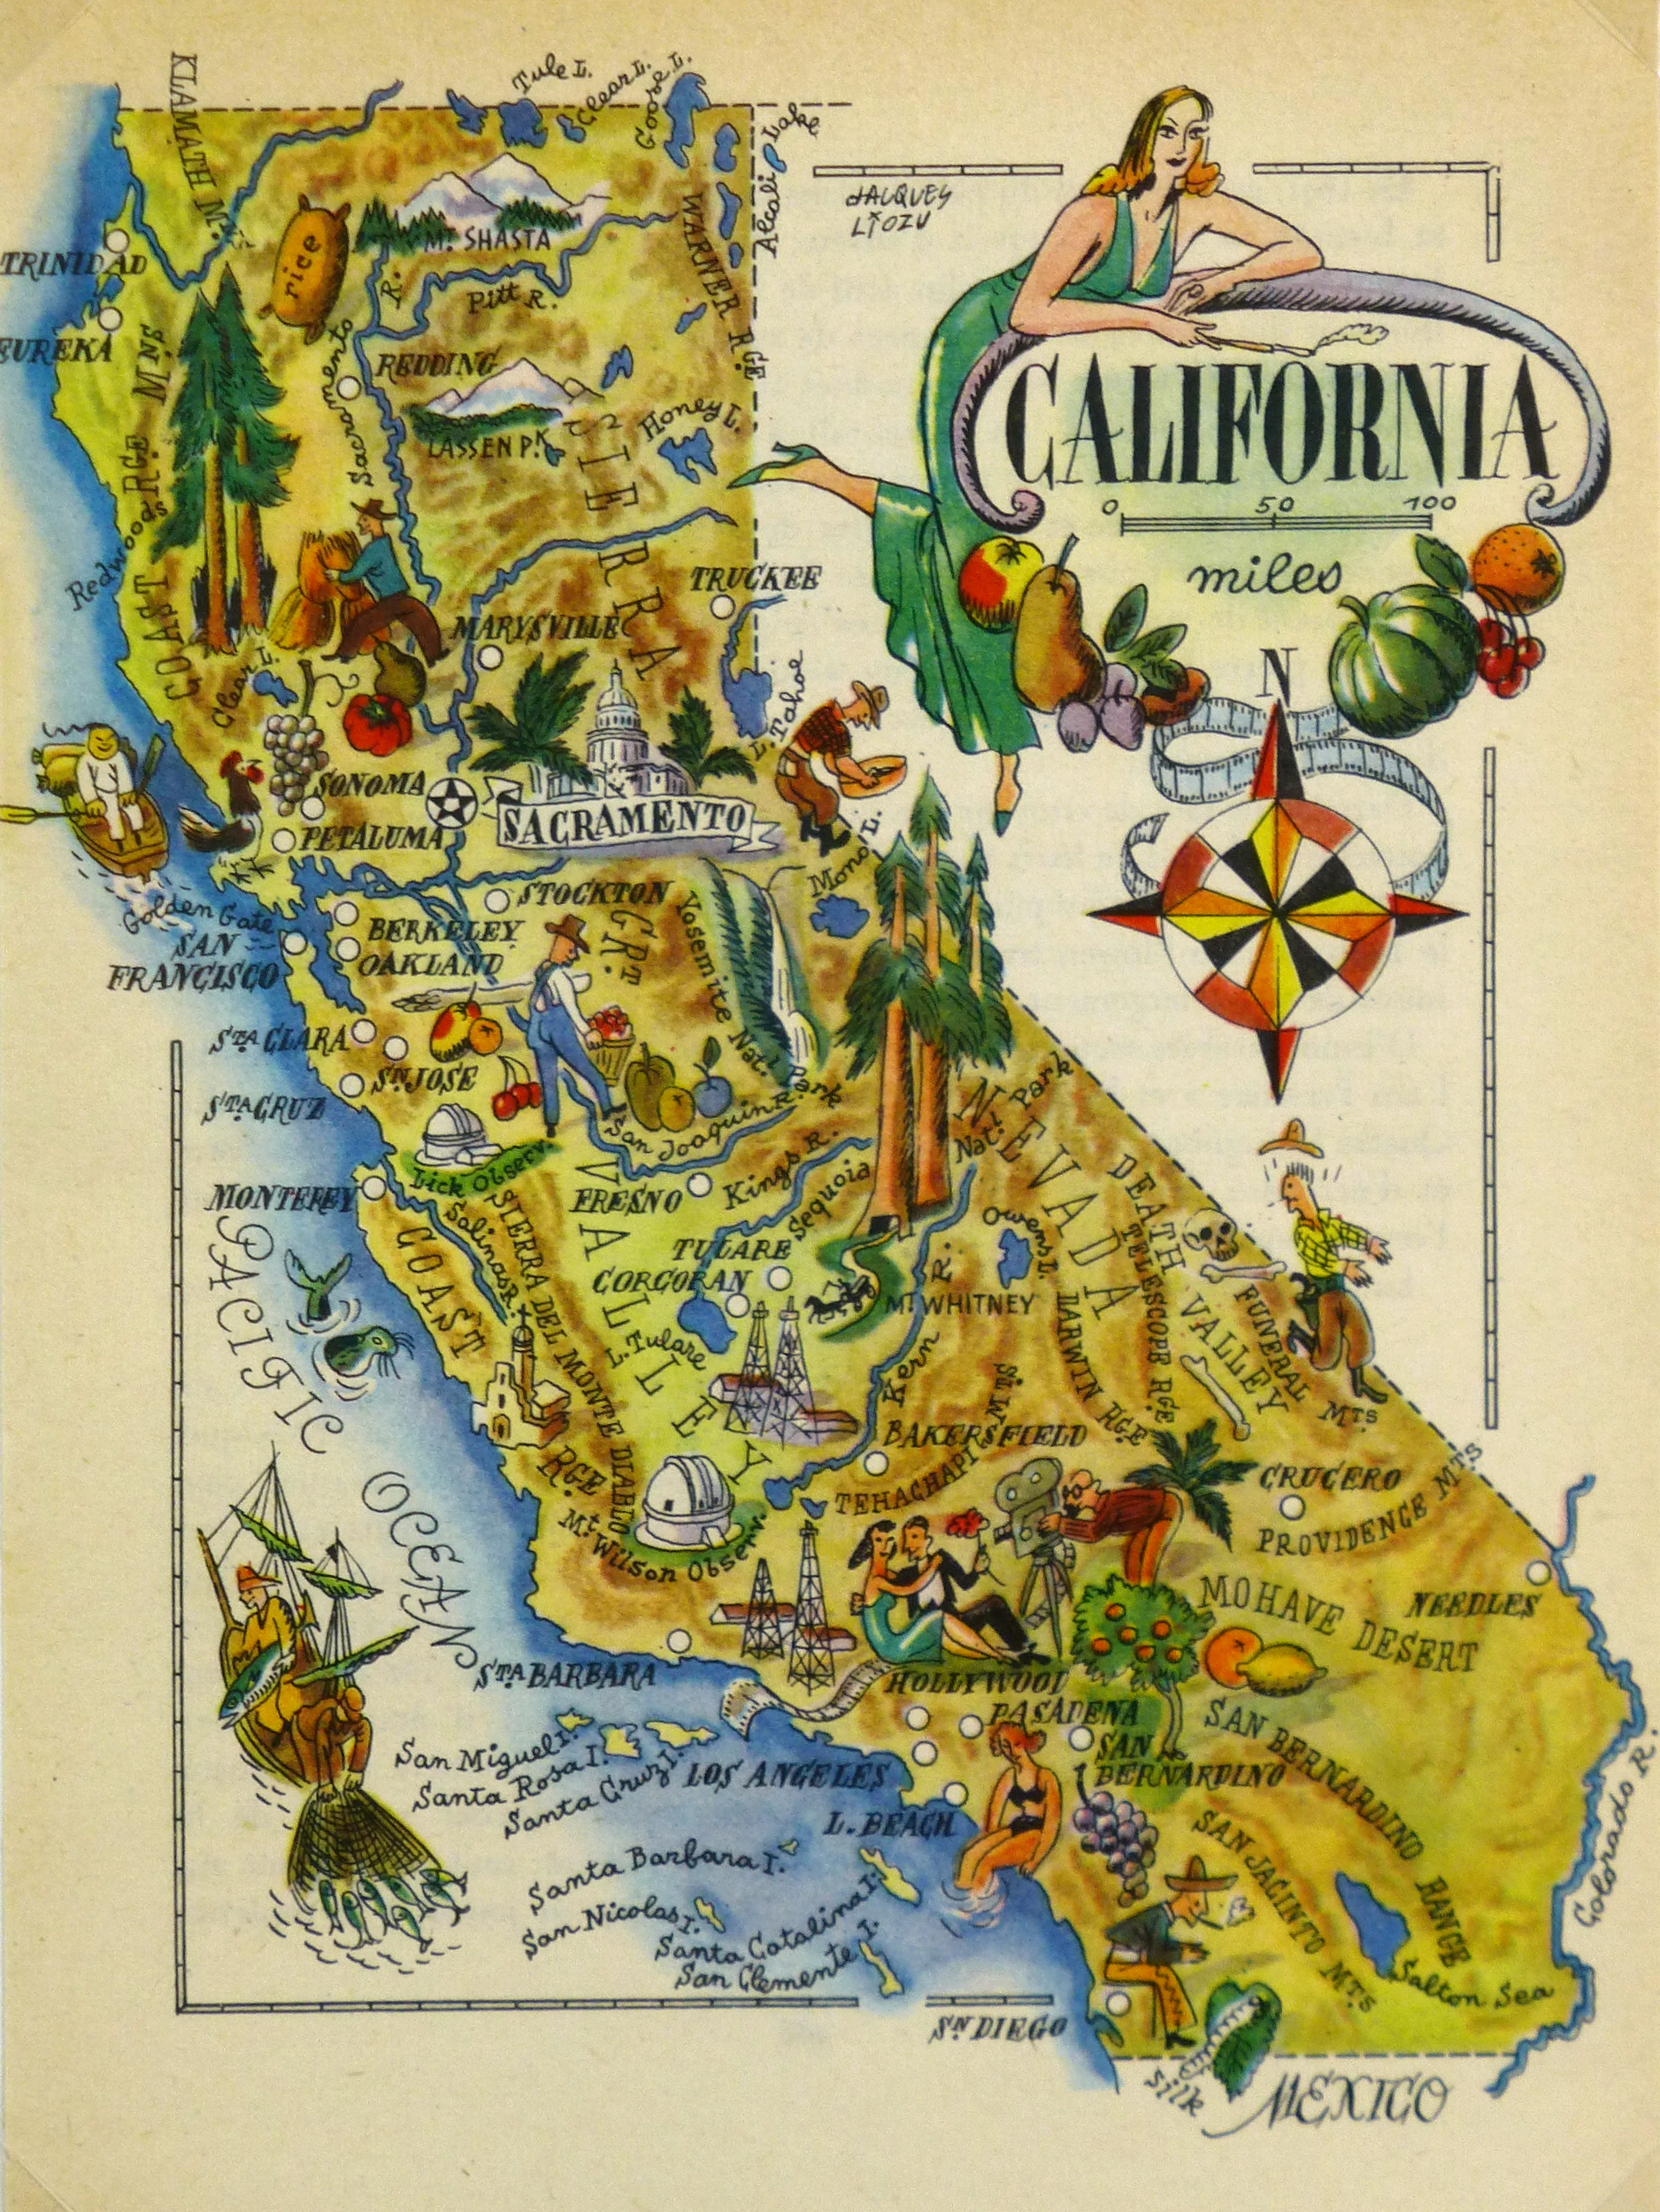 California Pictorial Map, 1946 on